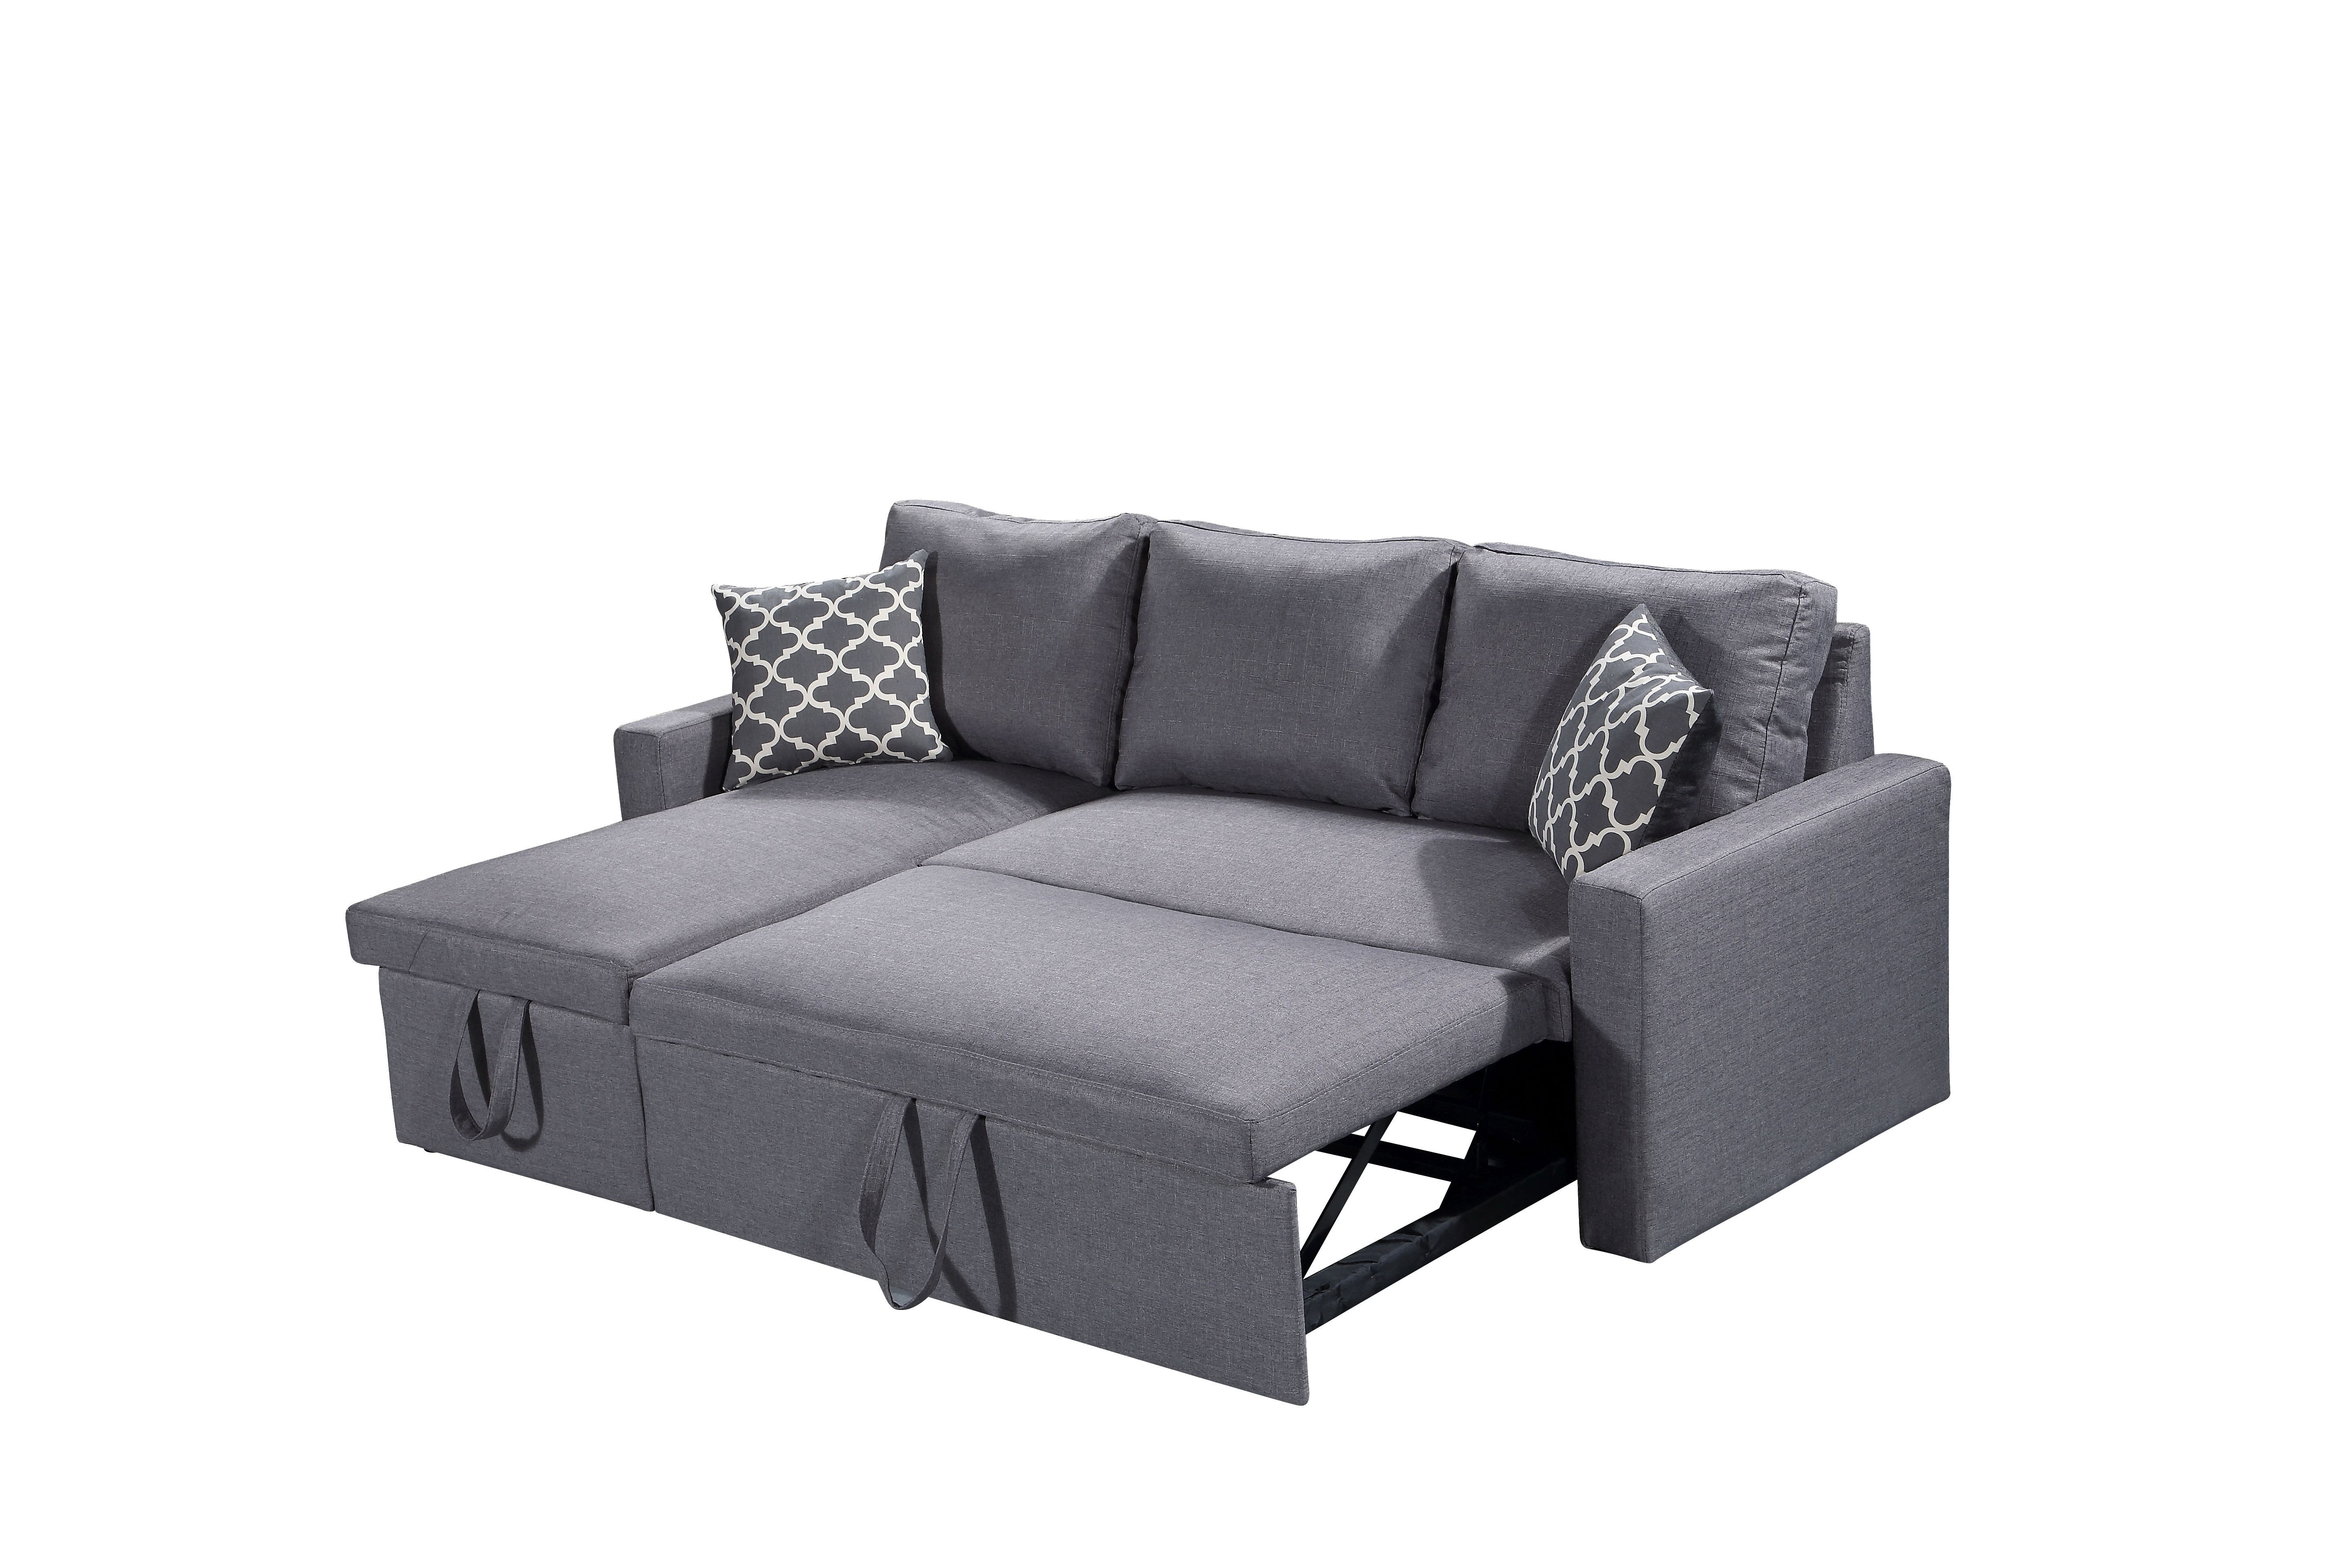 Functionalities Throughout Well Liked Kijiji Ottawa Sectional Sofas (View 6 of 20)